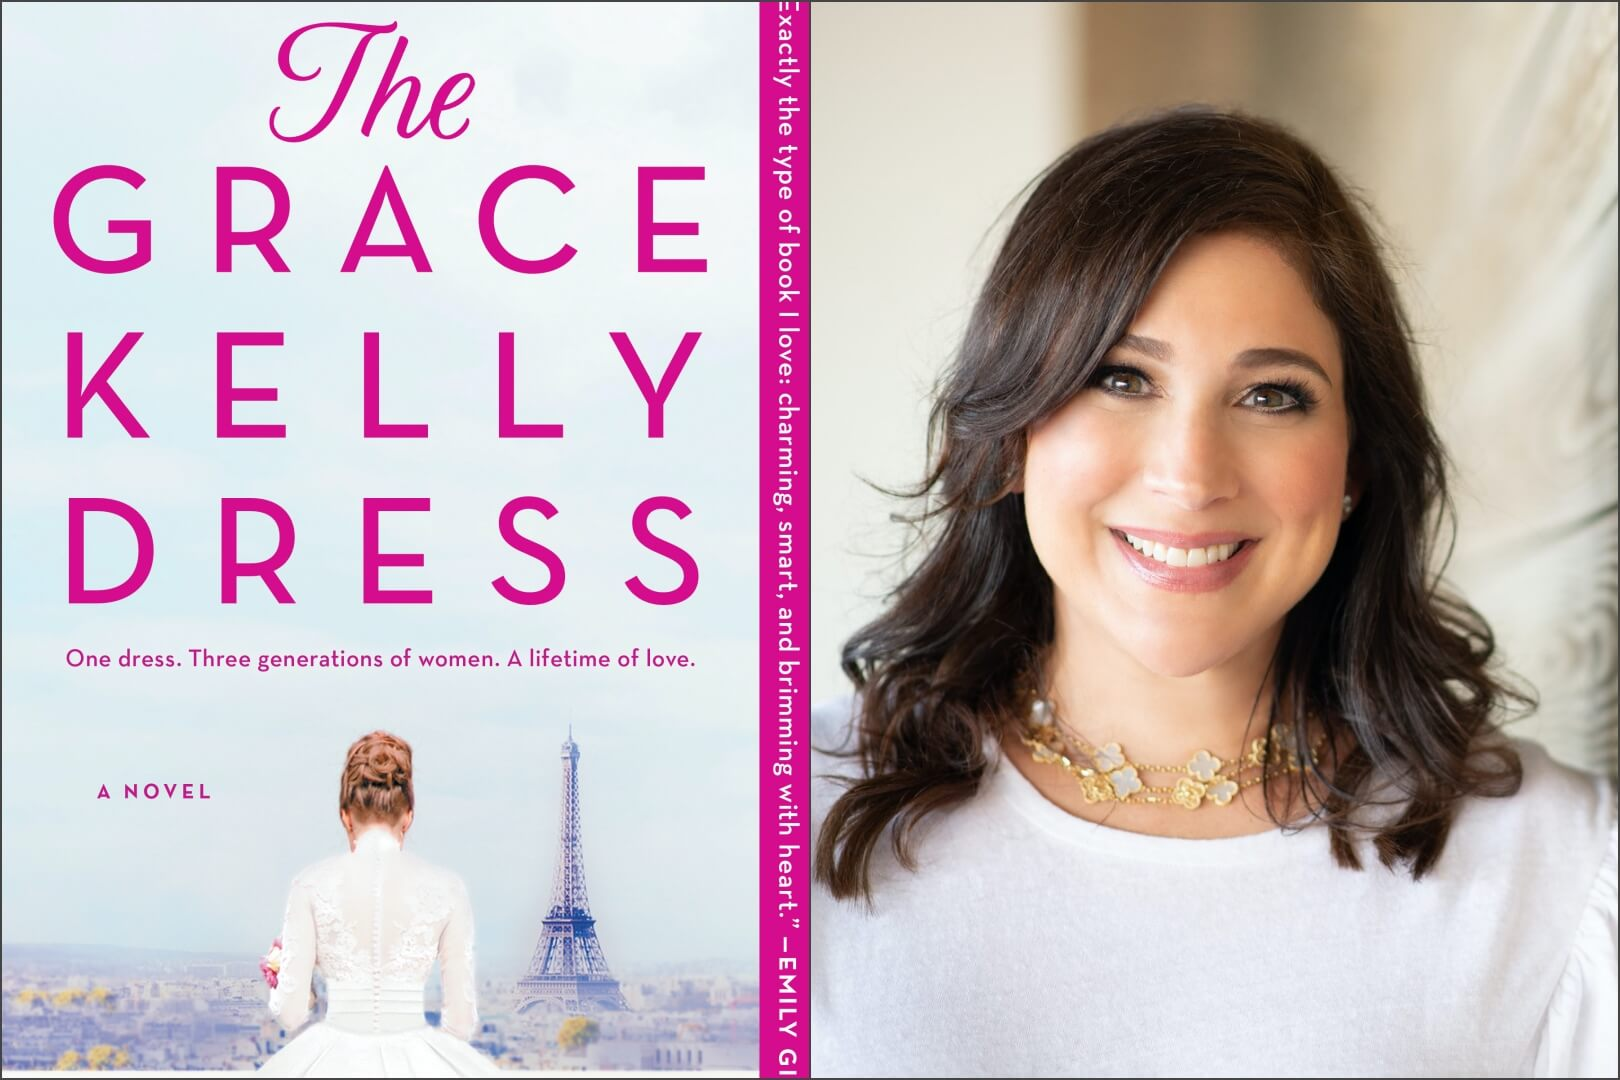 brenda grace kelly dress - book club chat